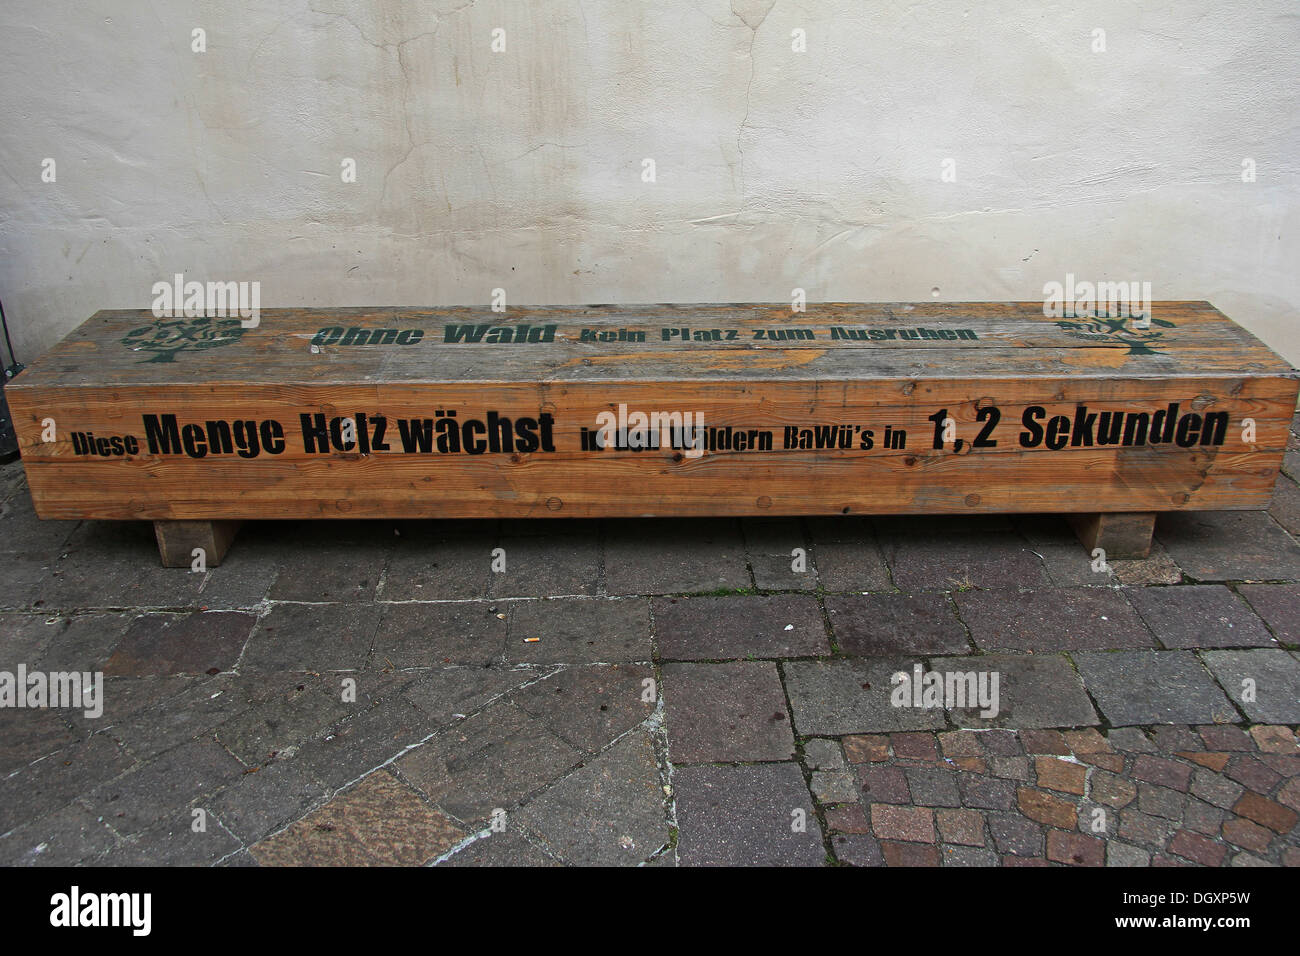 Wooden bench with a note 'Ohne Wald kein Platz zum Ausruhen', English for 'without forests, there is no place to rest' - Stock Image